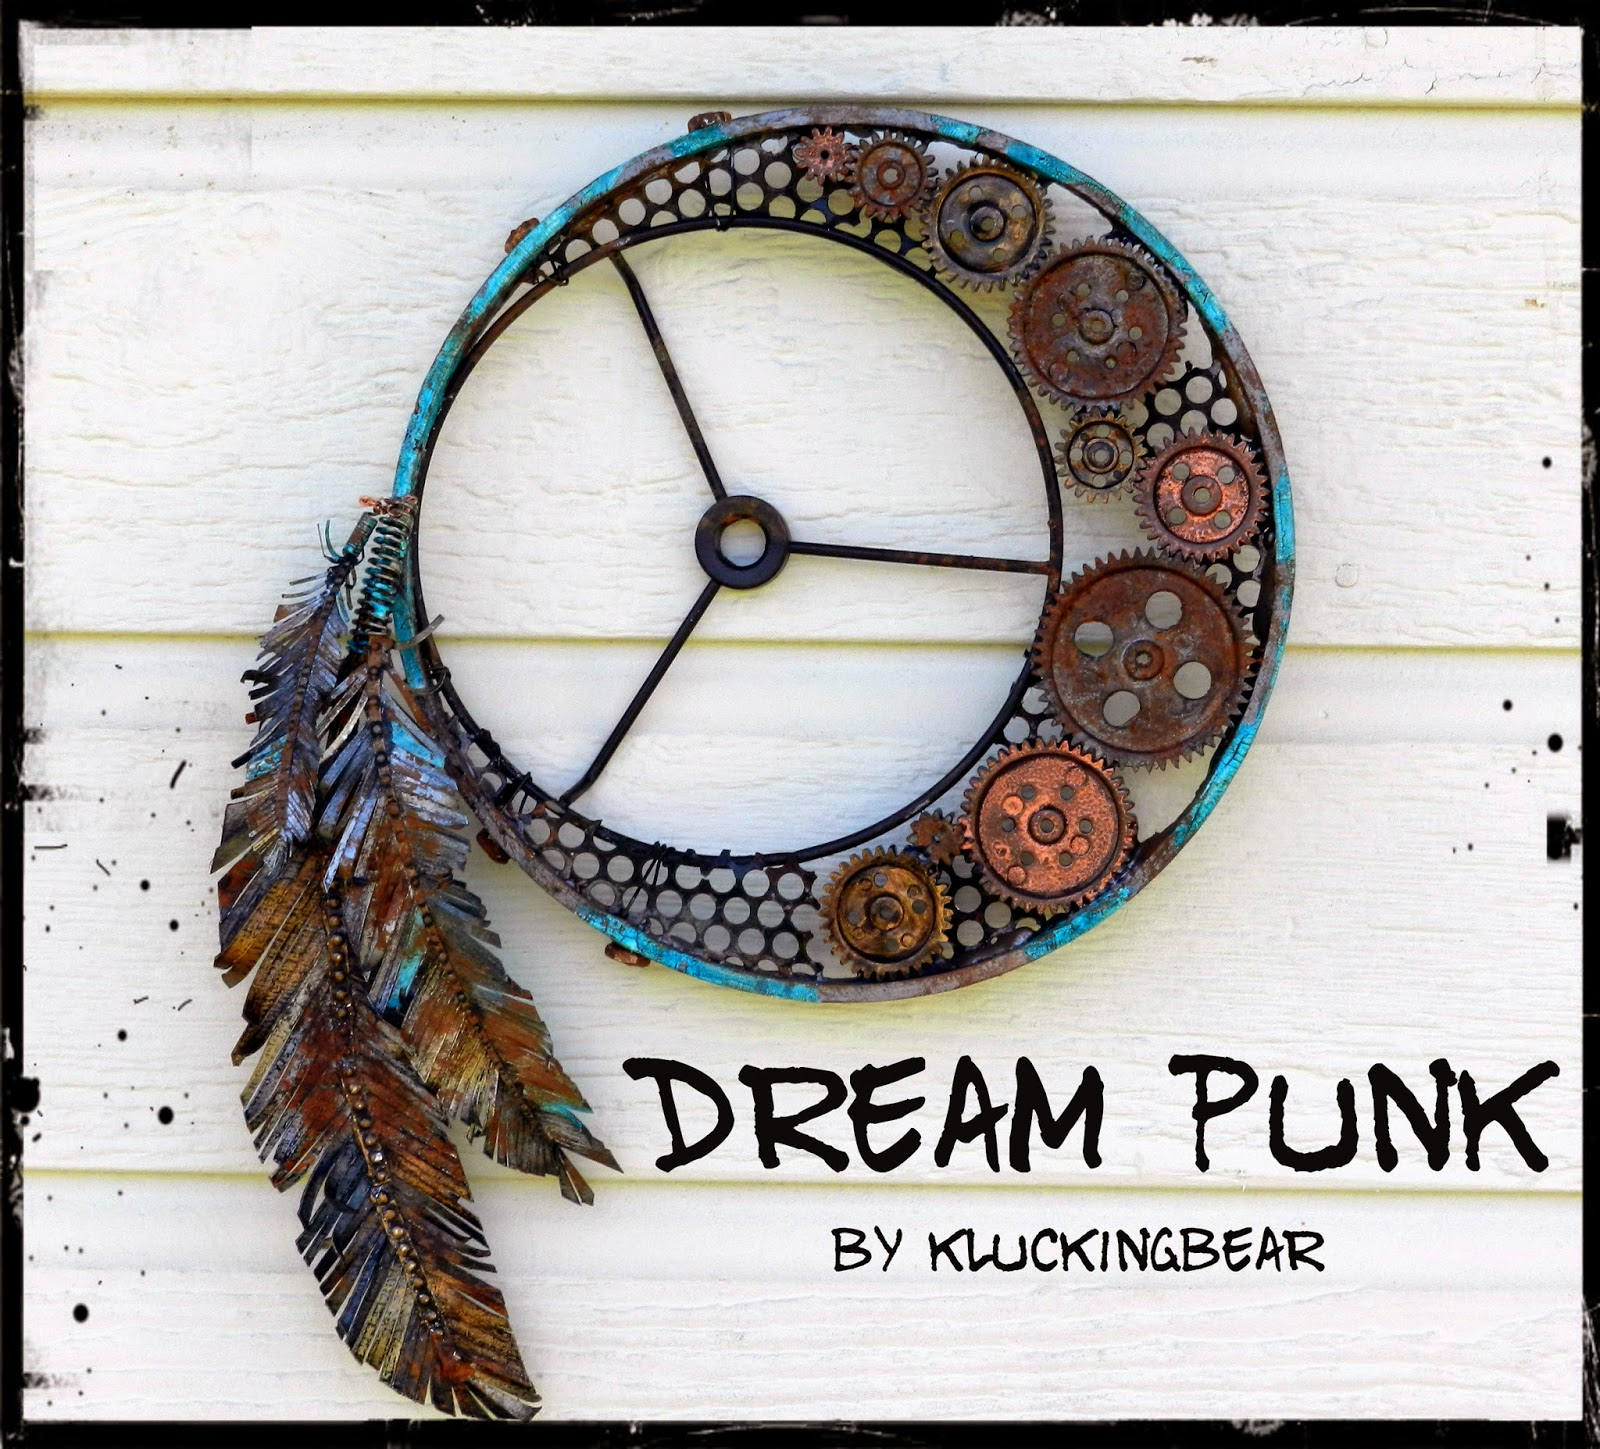 http://kluckingbear.blogspot.co.at/2014/06/steampunk-dreamcatcher.html